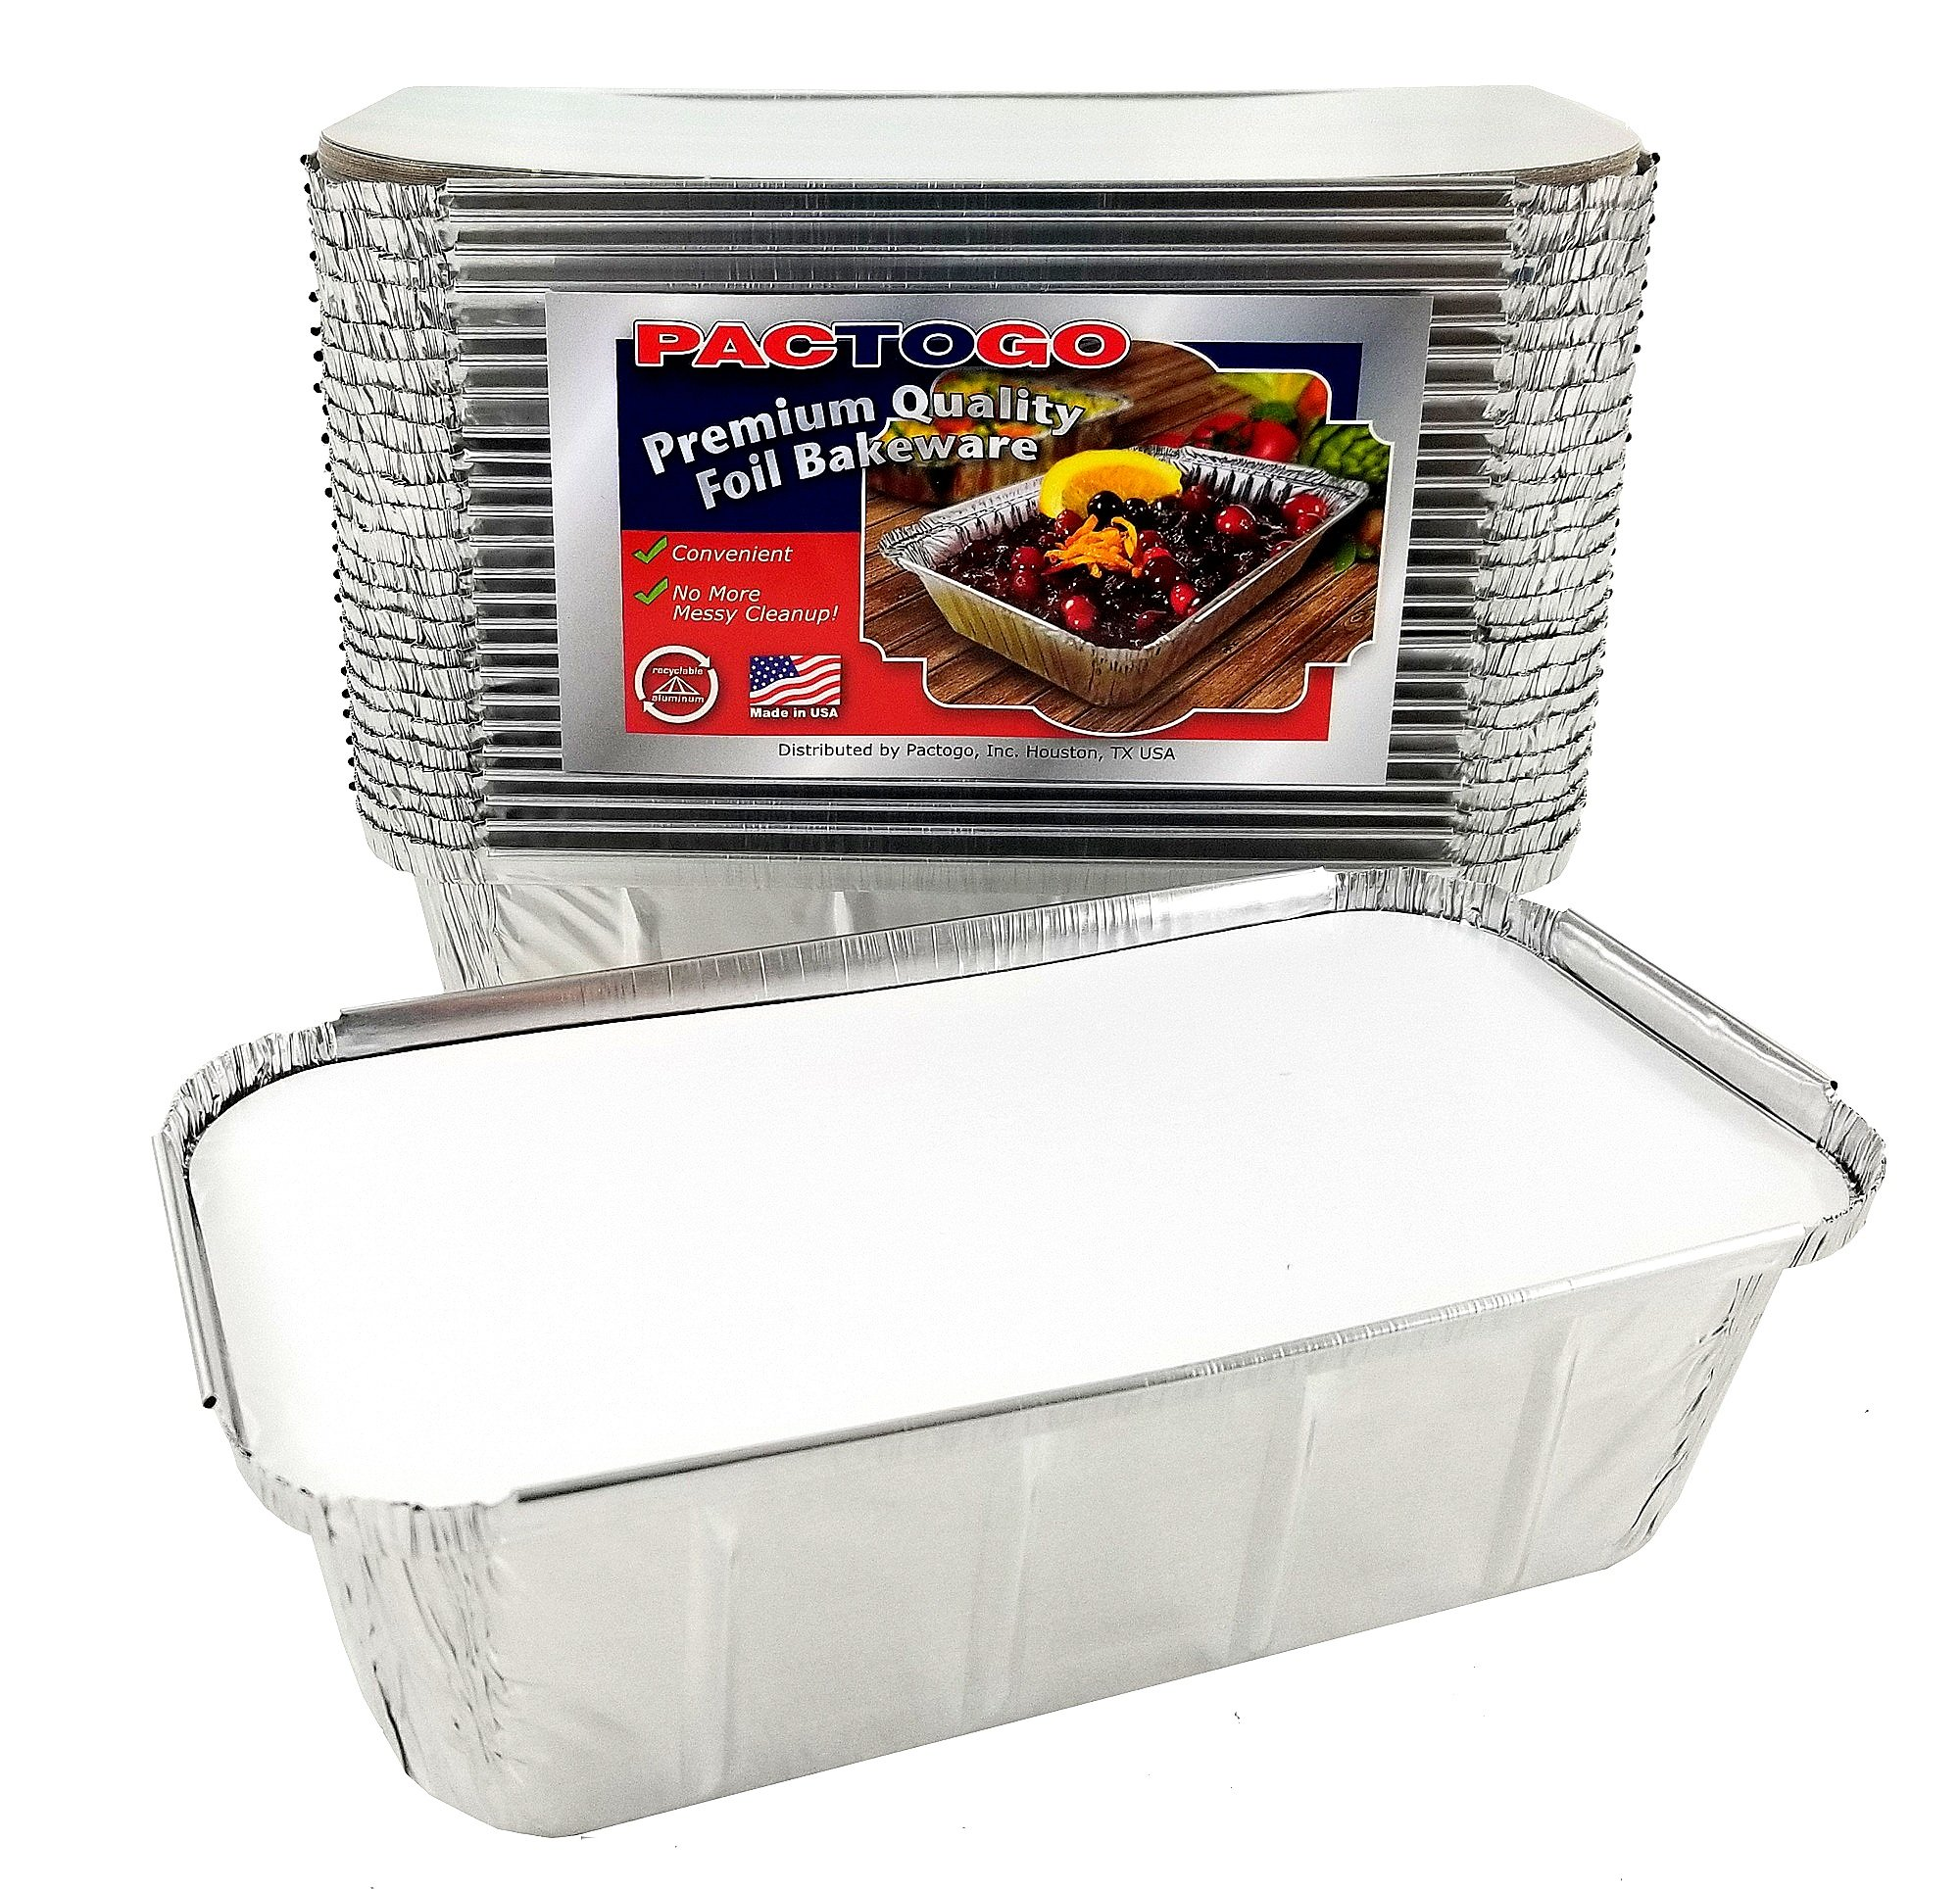 Pactogo 1 1/2 lb. IVC Disposable Aluminum Foil Loaf Bread Pan w/Board Lid (8'' x 4.1'' x 2.2'') - Heavy Duty Made in USA (Pack of 25 Sets)